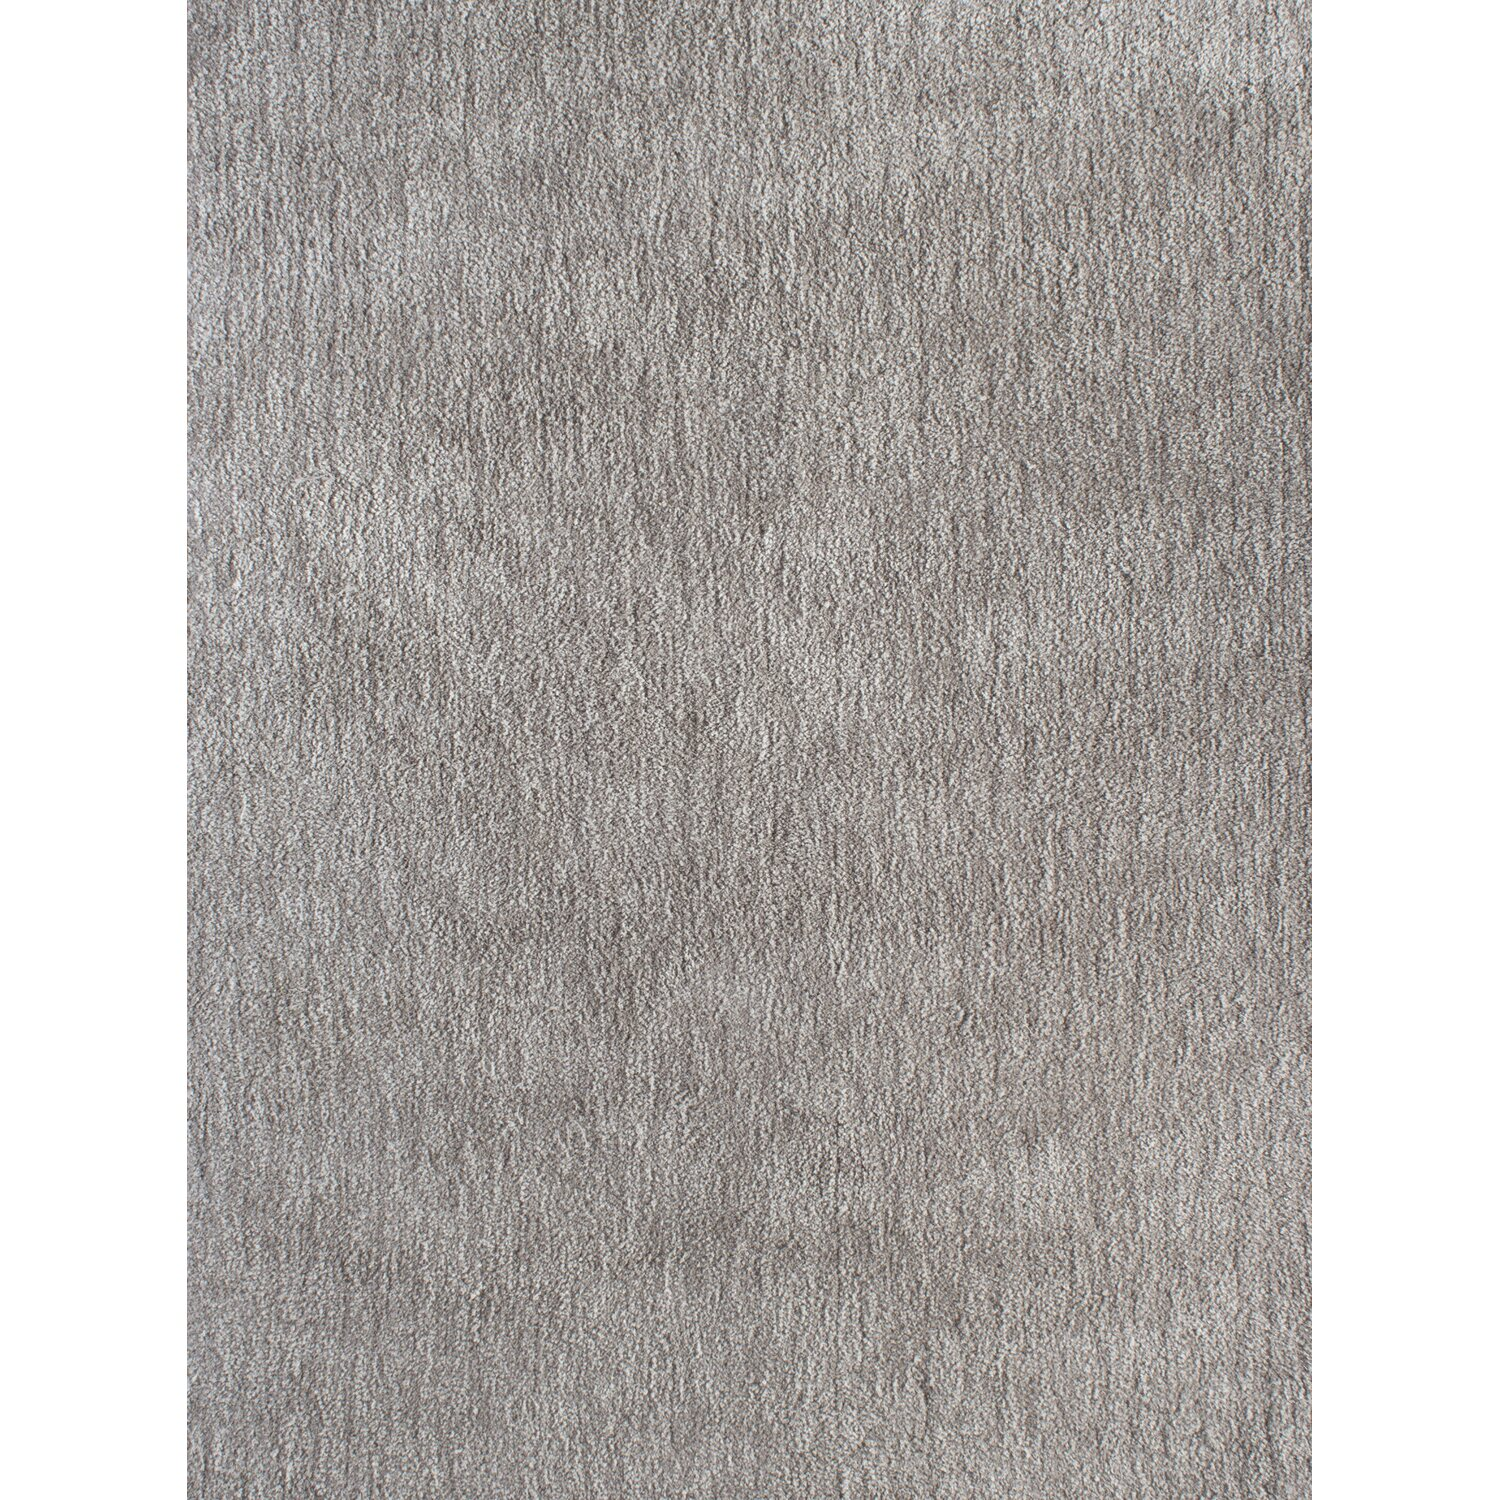 bb home passion Barbara Becker Teppich Touch 70 cm x 140 cm Beige